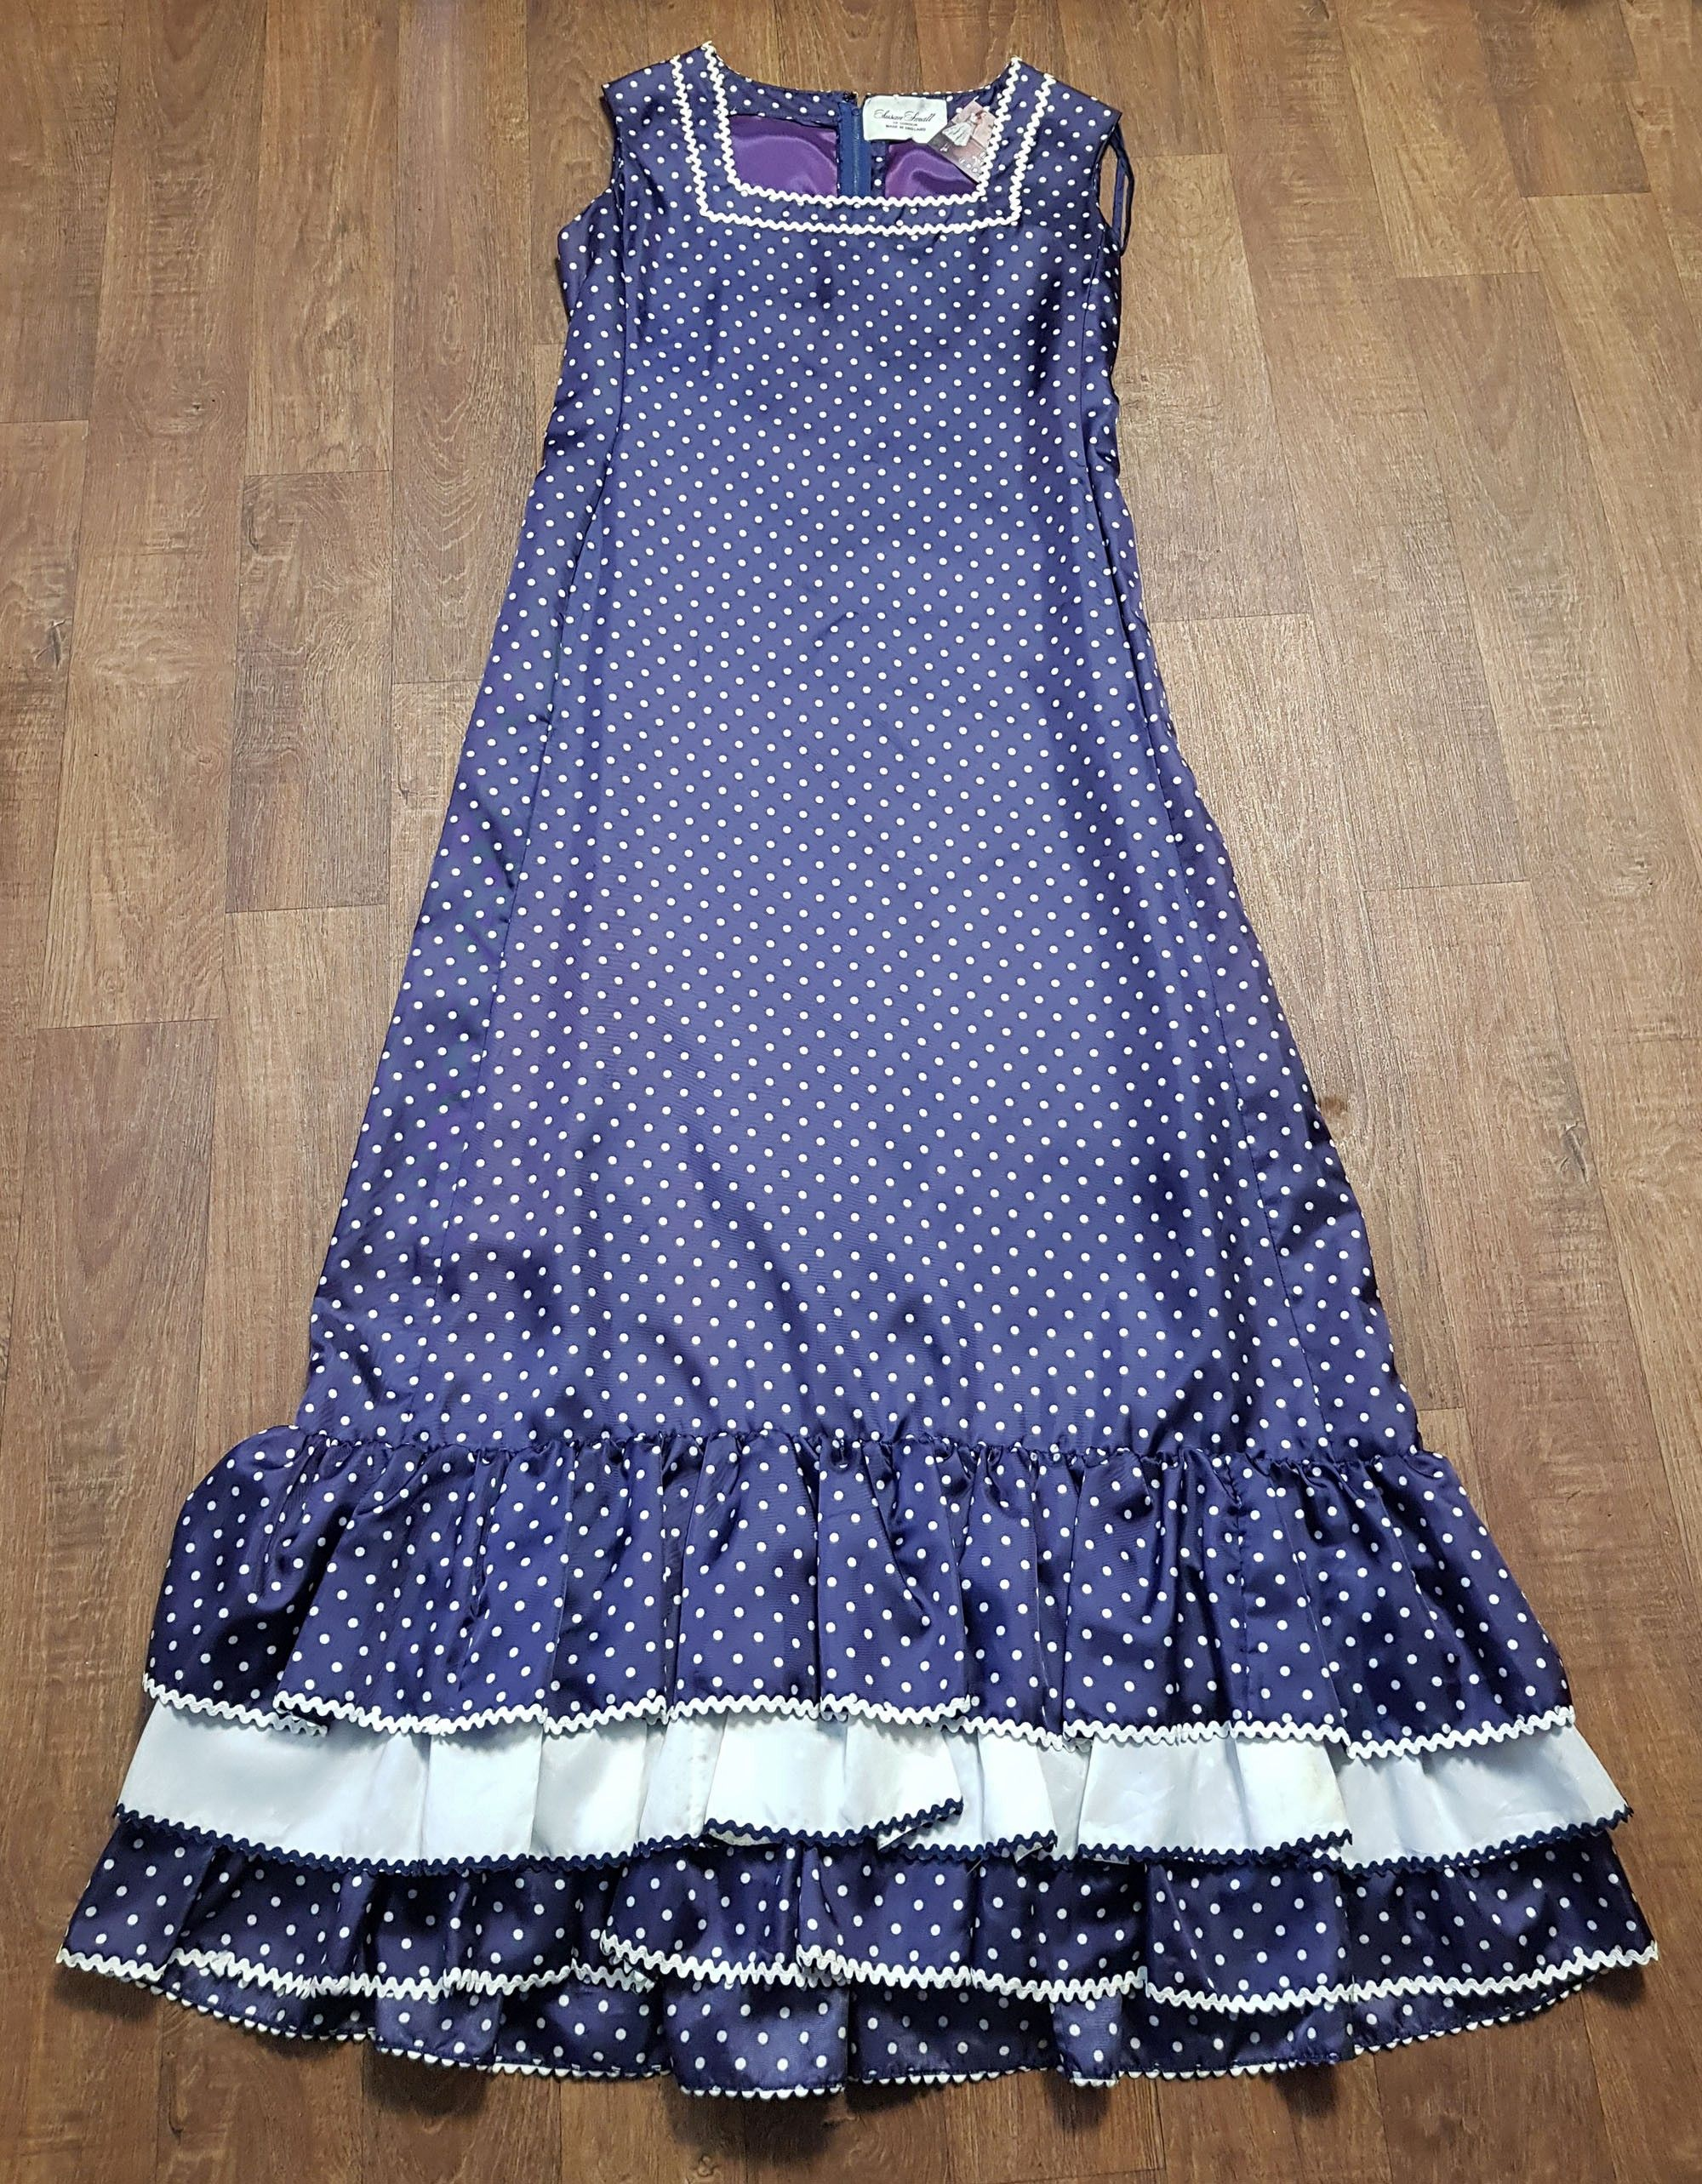 1960s Vintage Susan Small Navy Polka Dot Dress UK Size 16